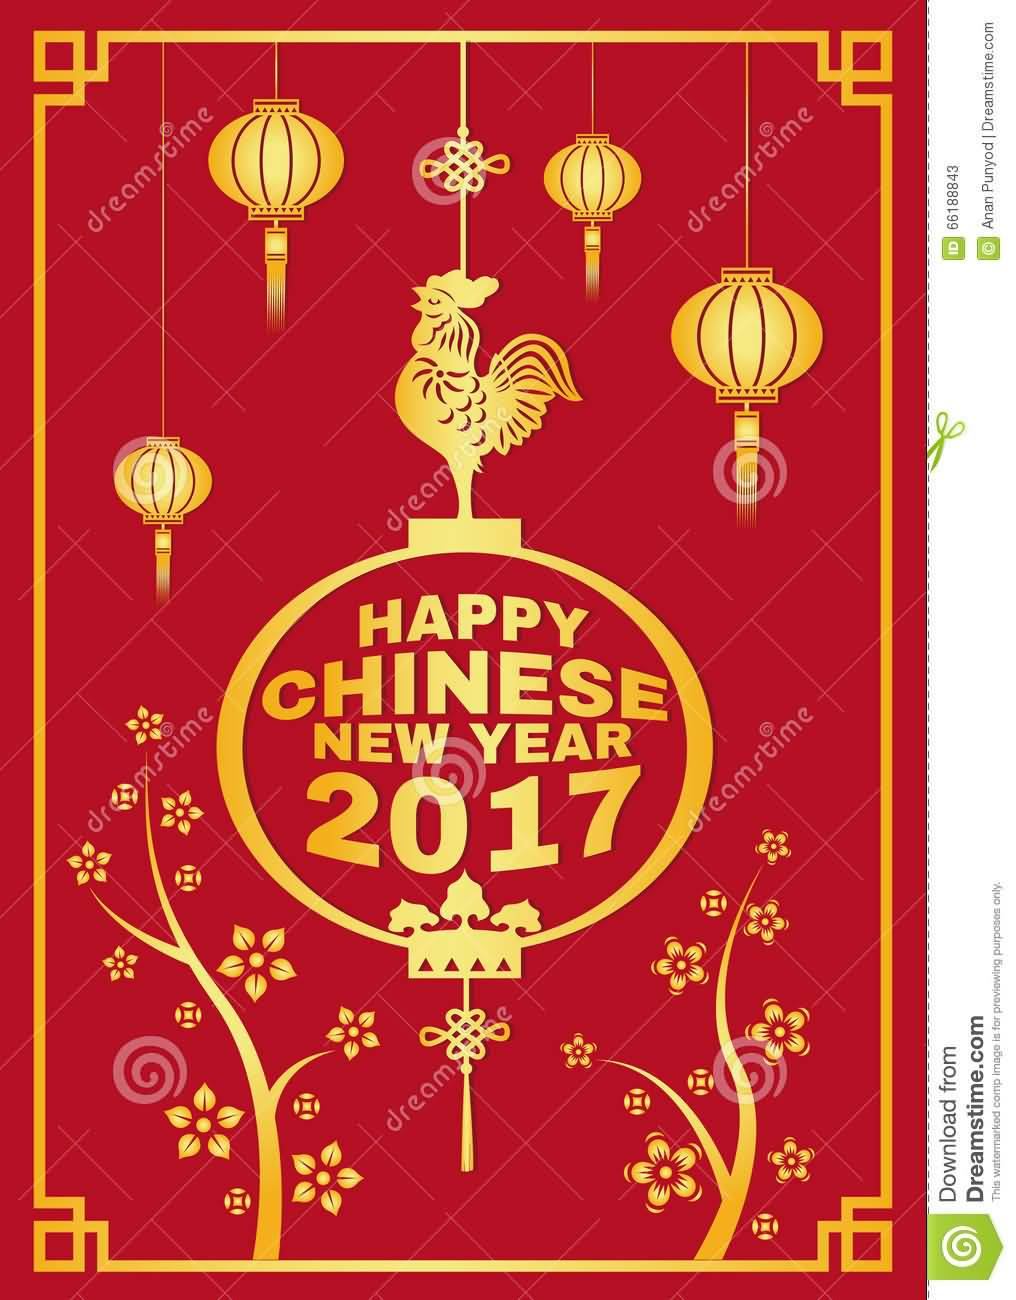 happy chinese new year 2017 greeting card